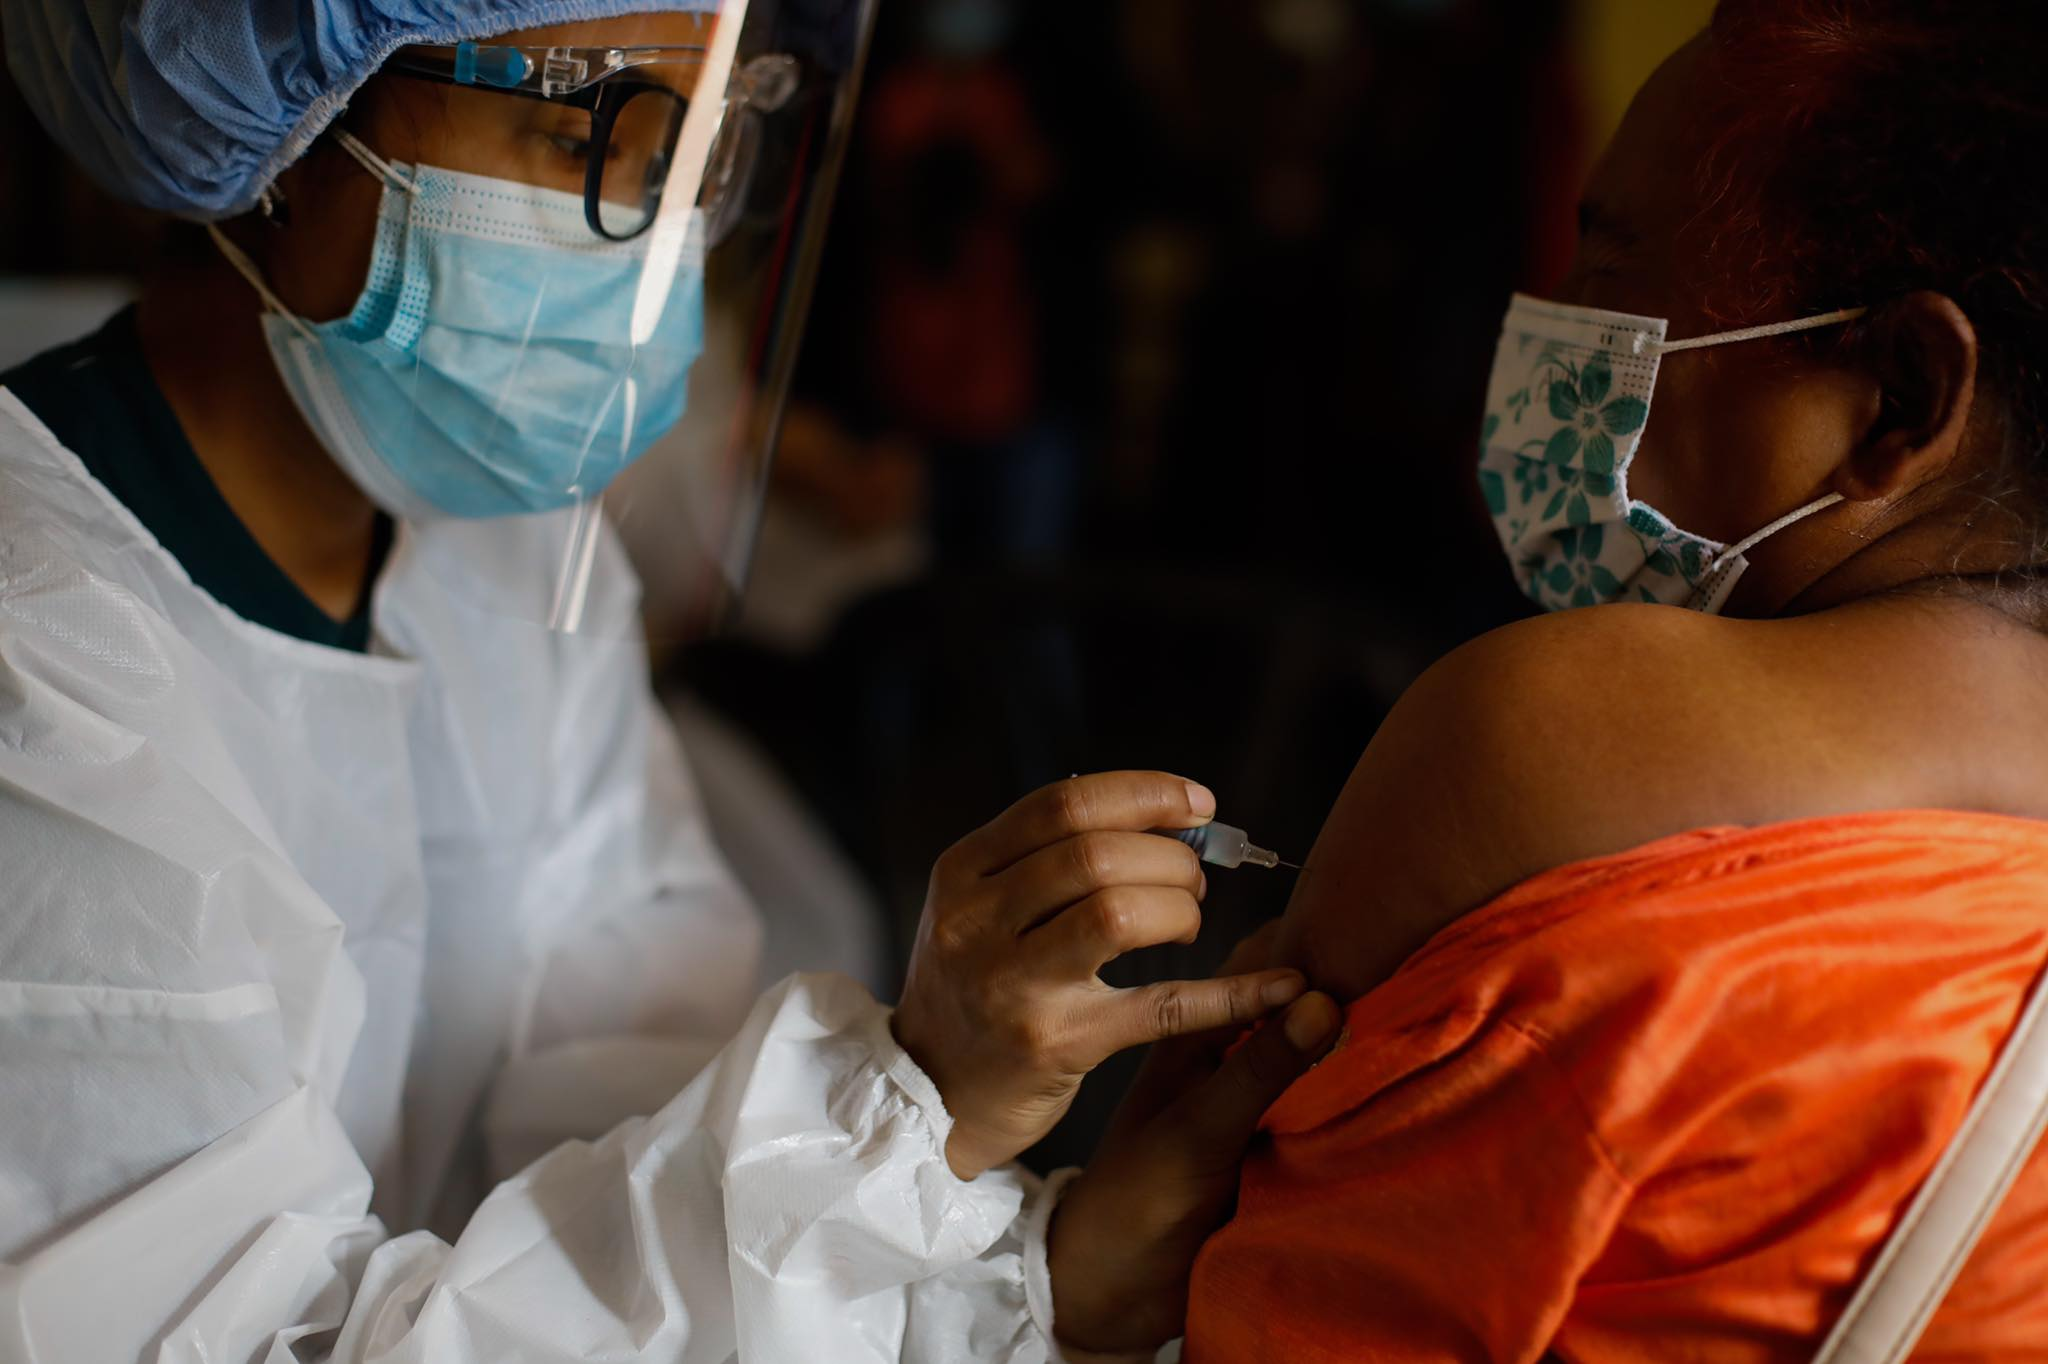 Nepal's Covid vaccination drive resumed on Tuesday, with Kathmandu Valley residents aged 60-64 receiving their first dose of the Sinopharm VeroCell vaccine. 1 million doses of the vaccine were assured to Nepal under grant by the Chinese government in late May.